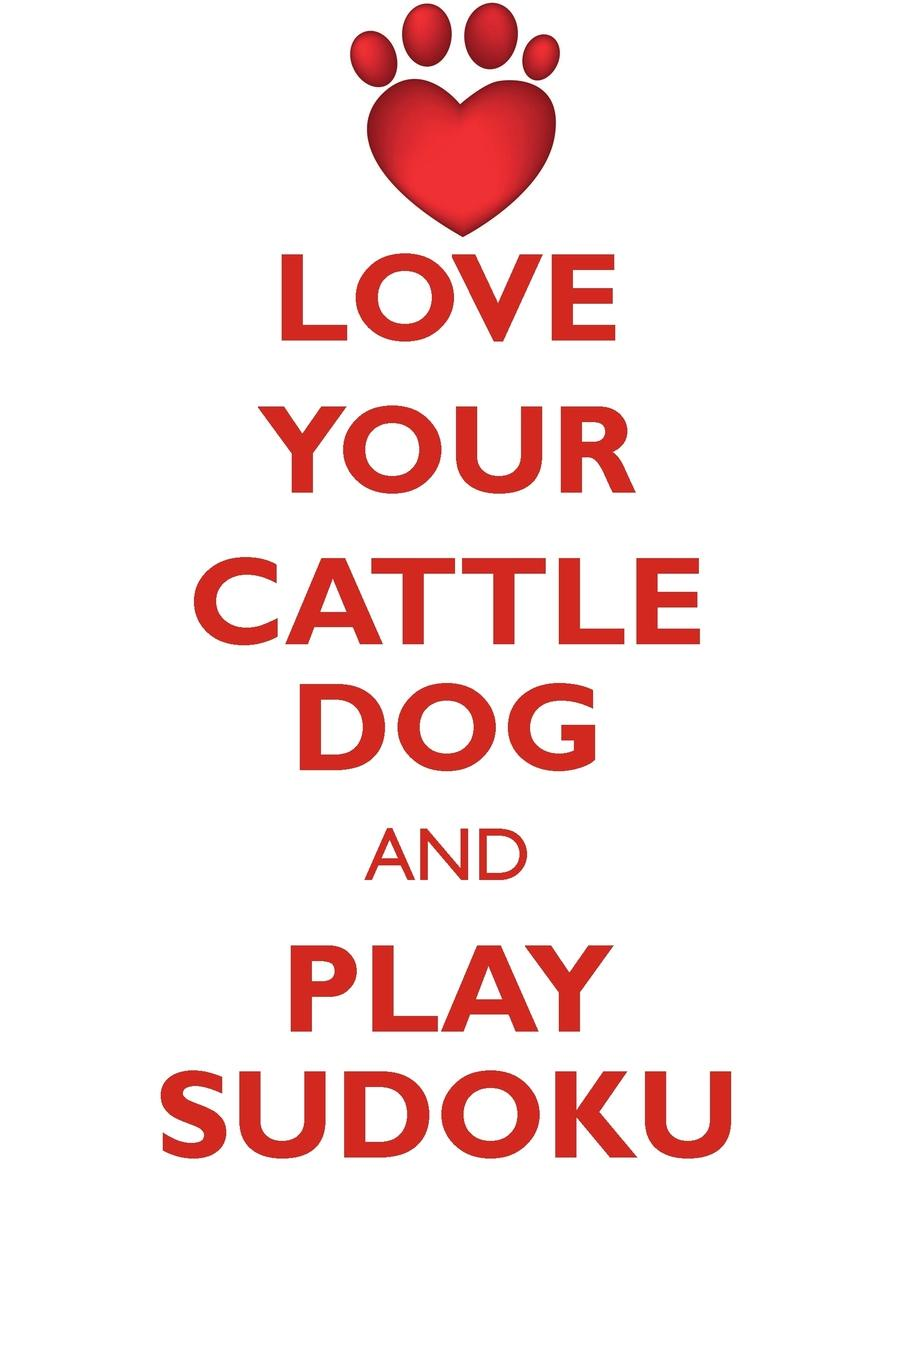 Loving Puzzles LOVE YOUR CATTLE DOG AND PLAY SUDOKU AUSTRALIAN CATTLE DOG SUDOKU LEVEL 1 of 15